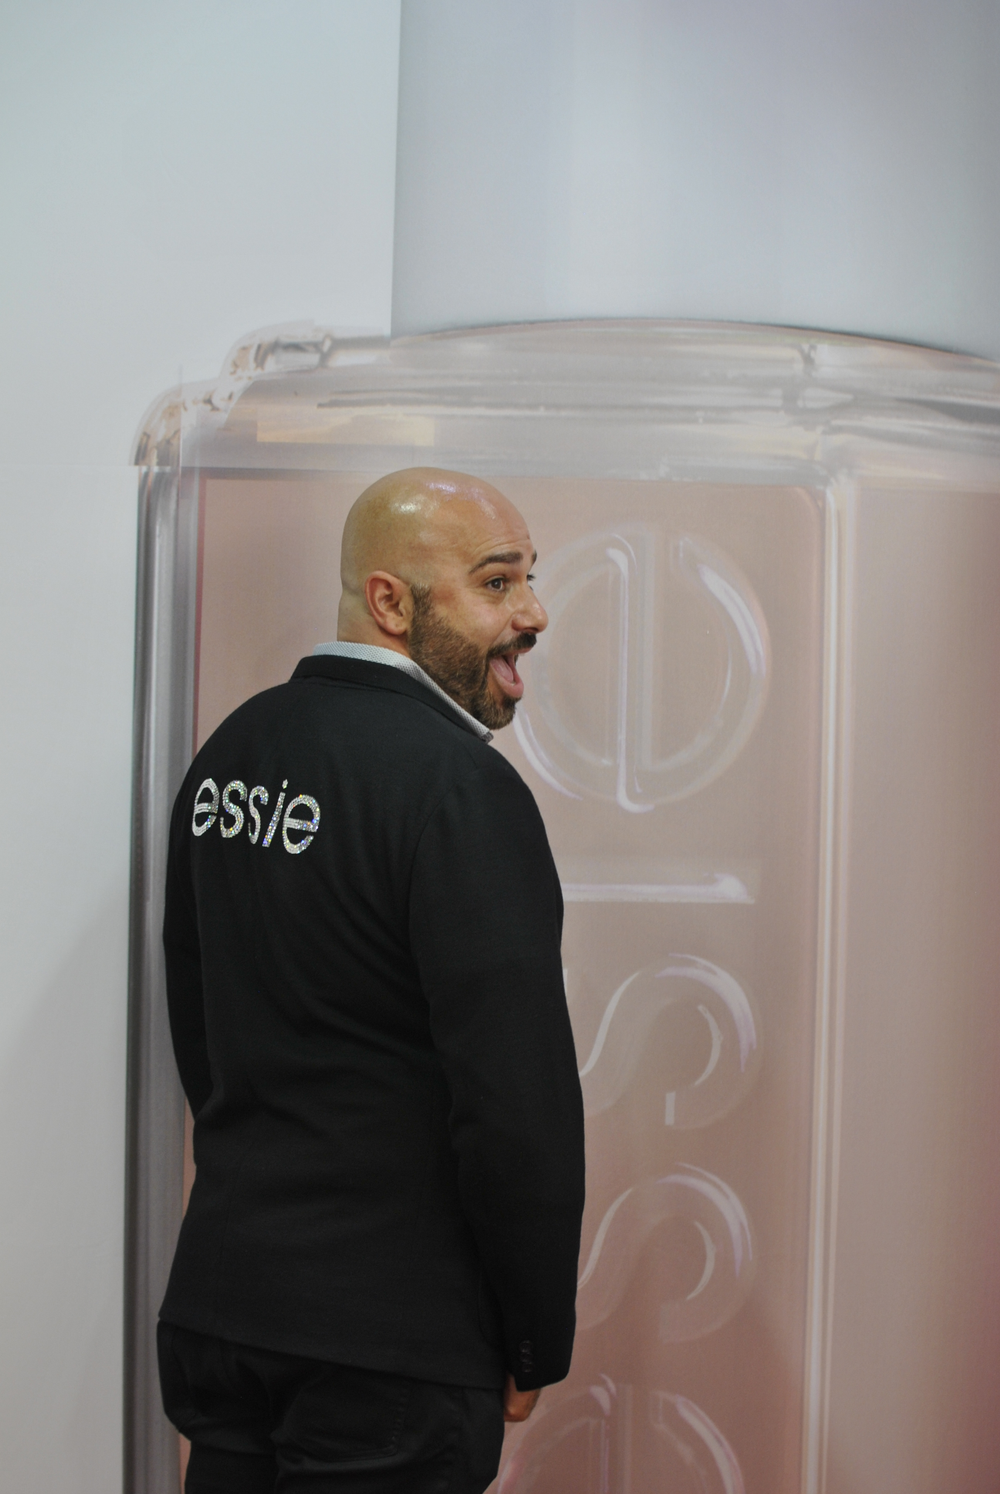 <p>Essie's Gino Trunzo shows off his blinged out Essie jacekt.</p>